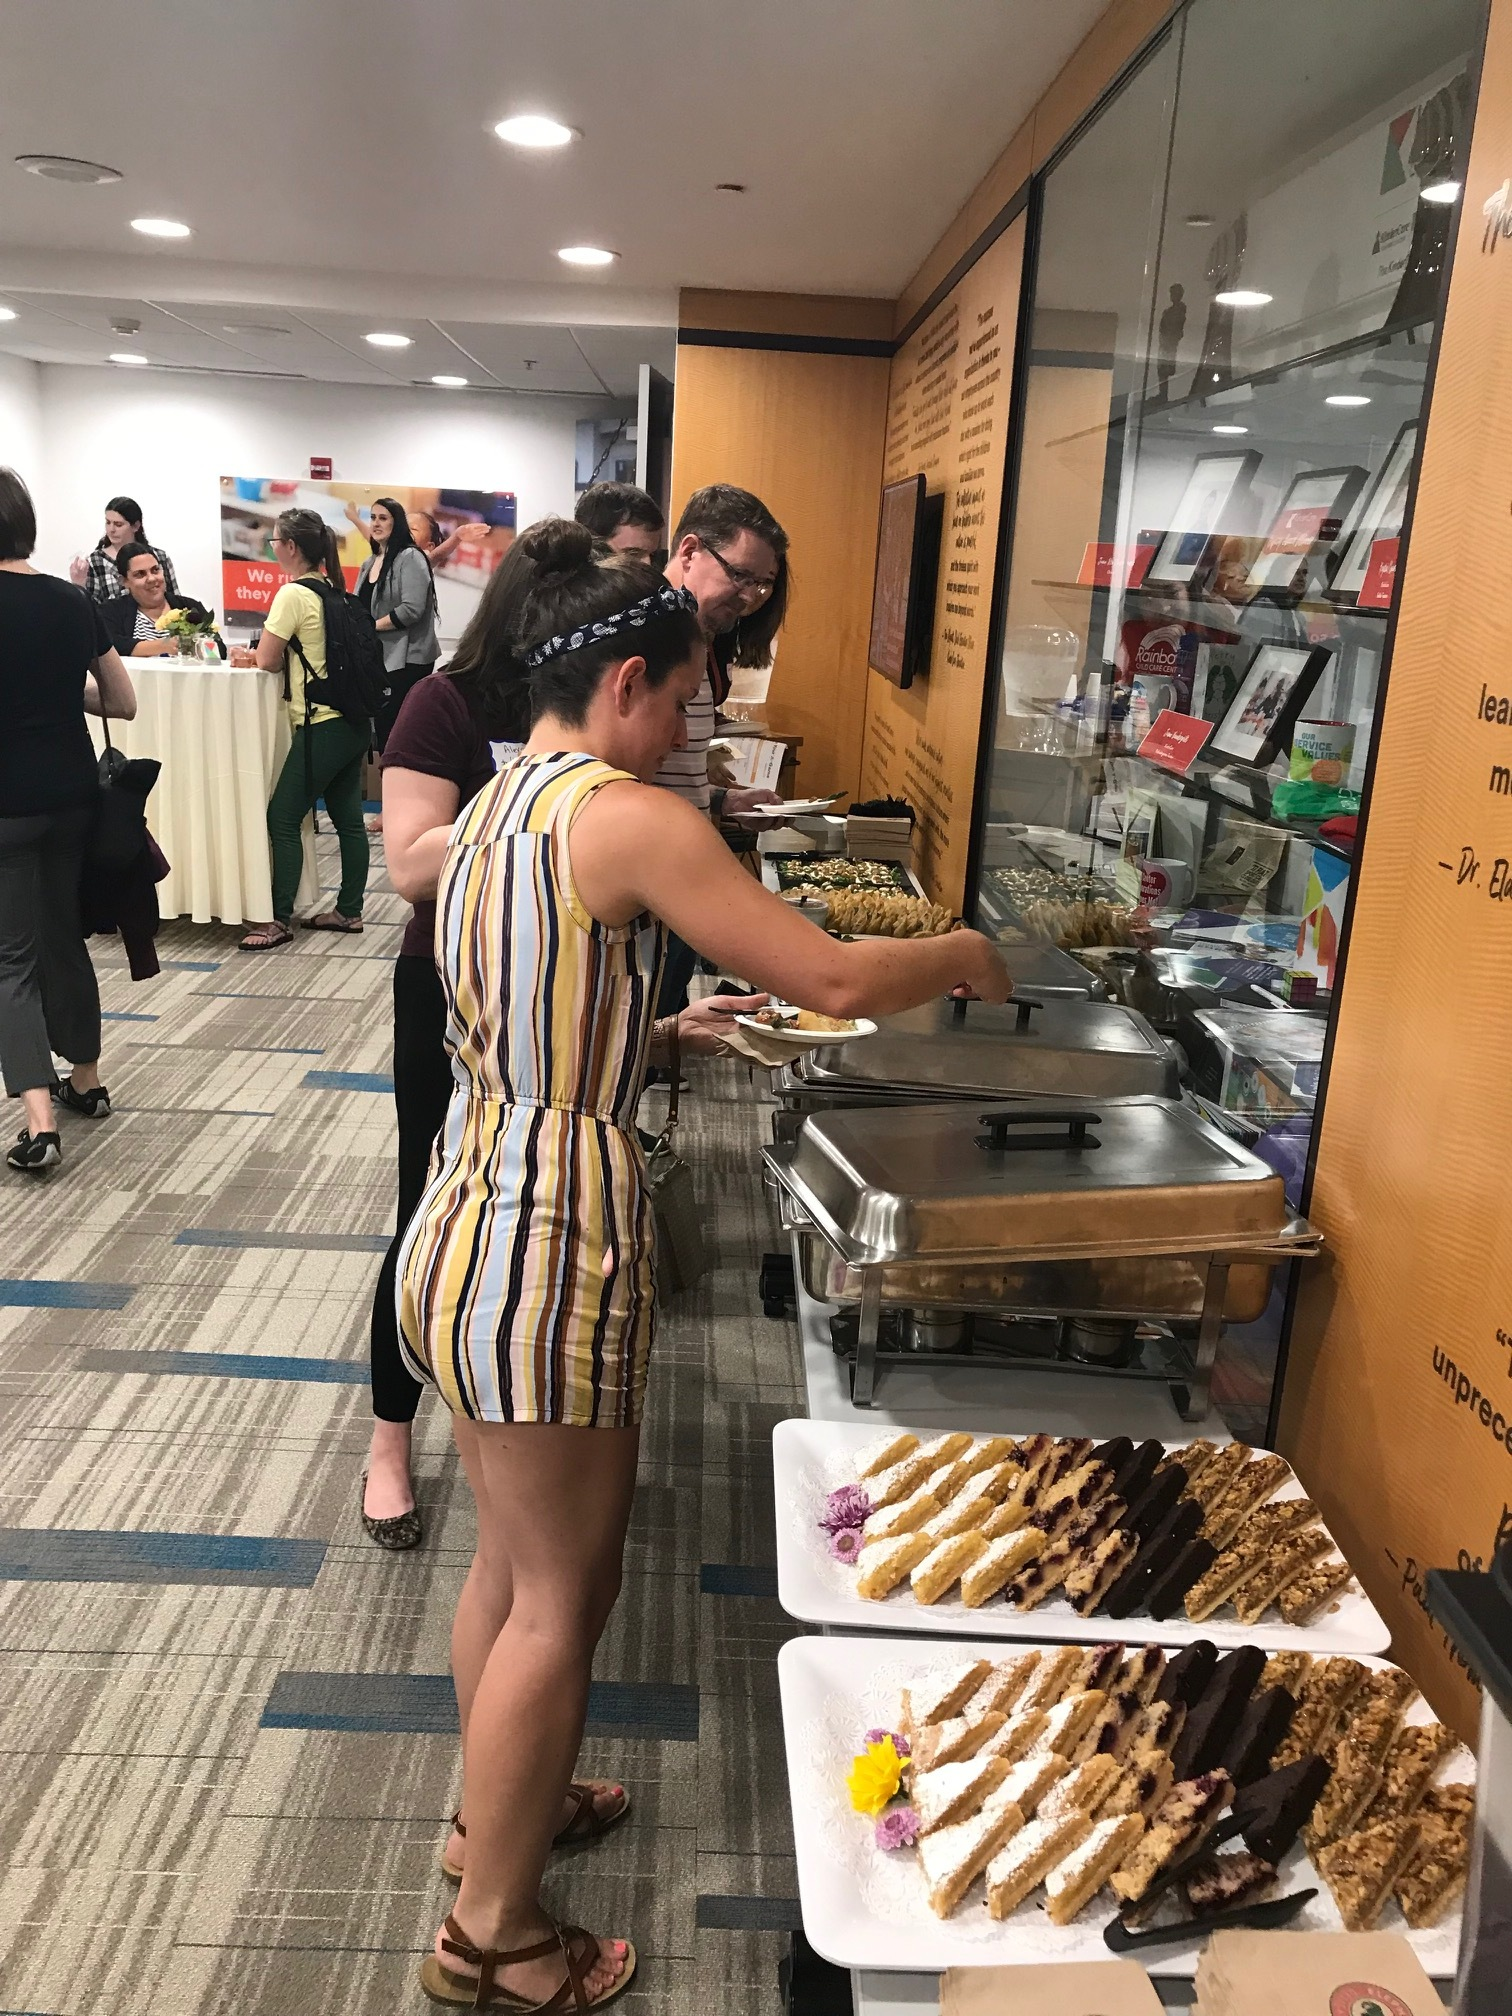 Attendee serving themselves food.jpg